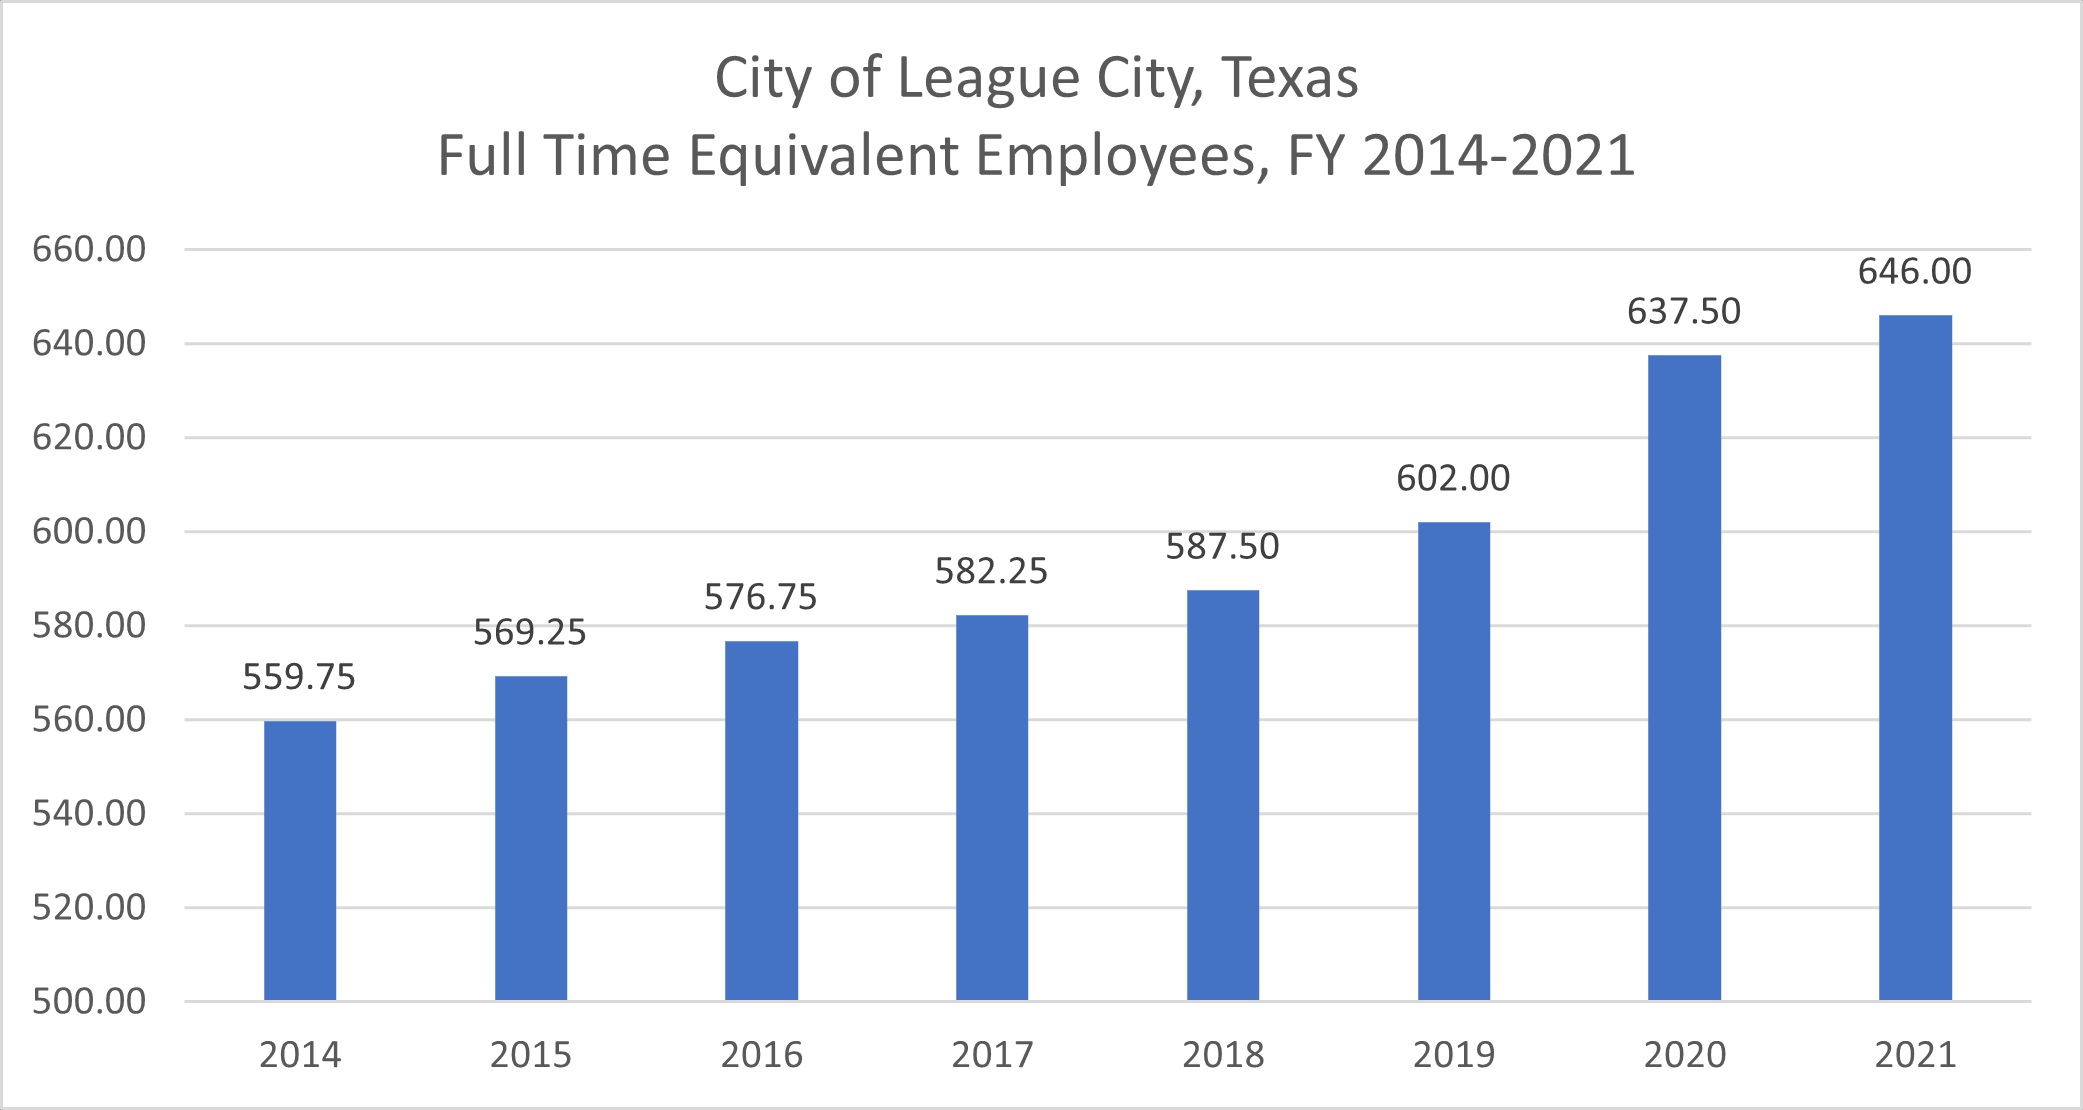 A graph showing the full time equivalent employees for fiscal years 2011 to 2017.